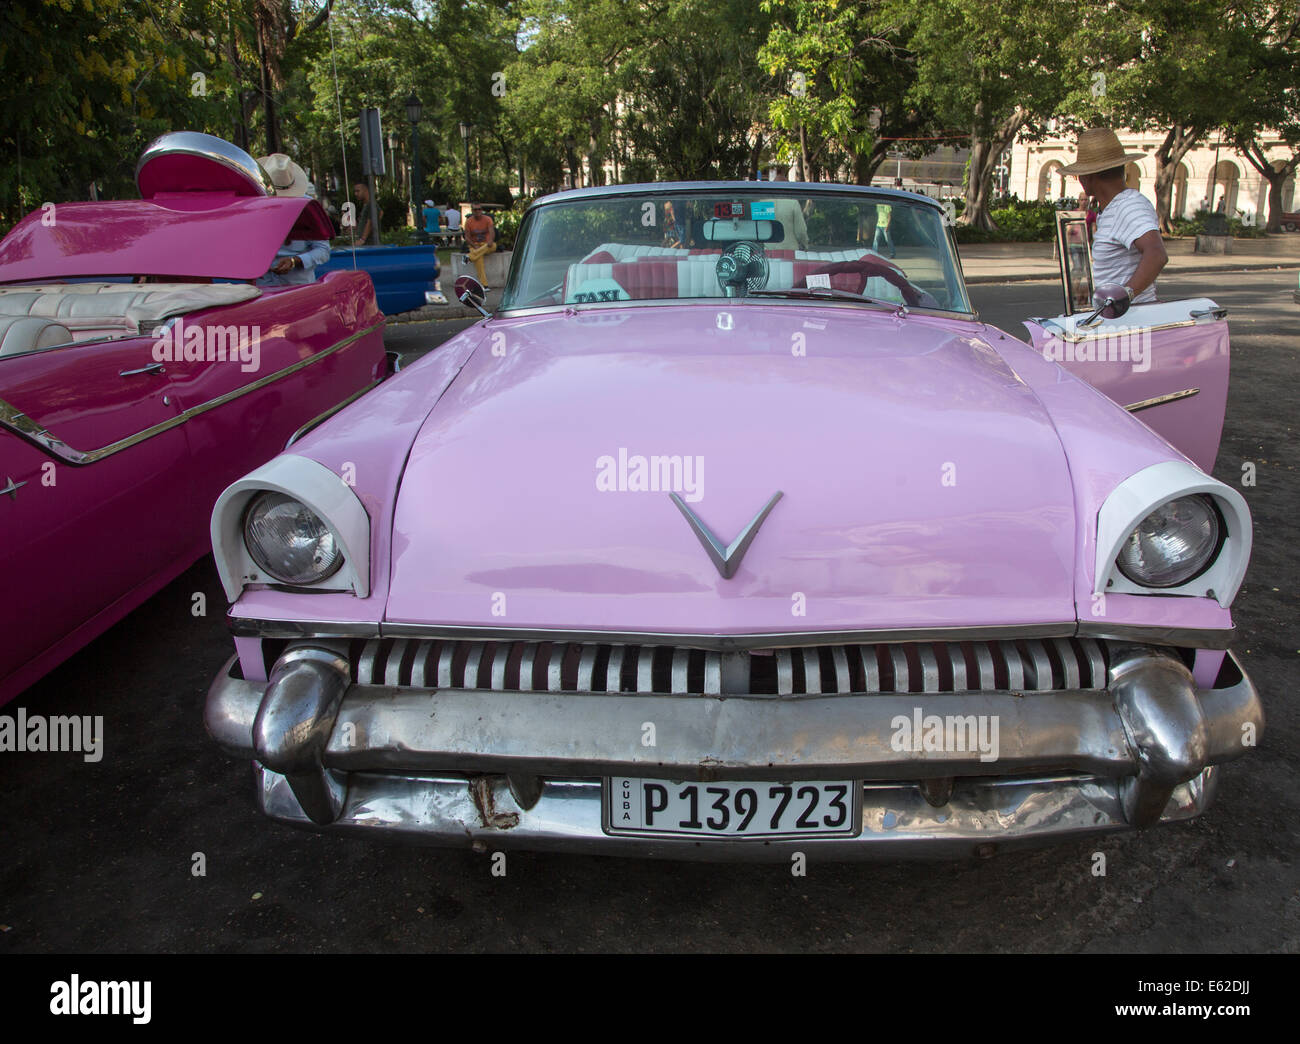 old 1950s convertible car, Havana, Cuba Stock Photo: 72584026 - Alamy